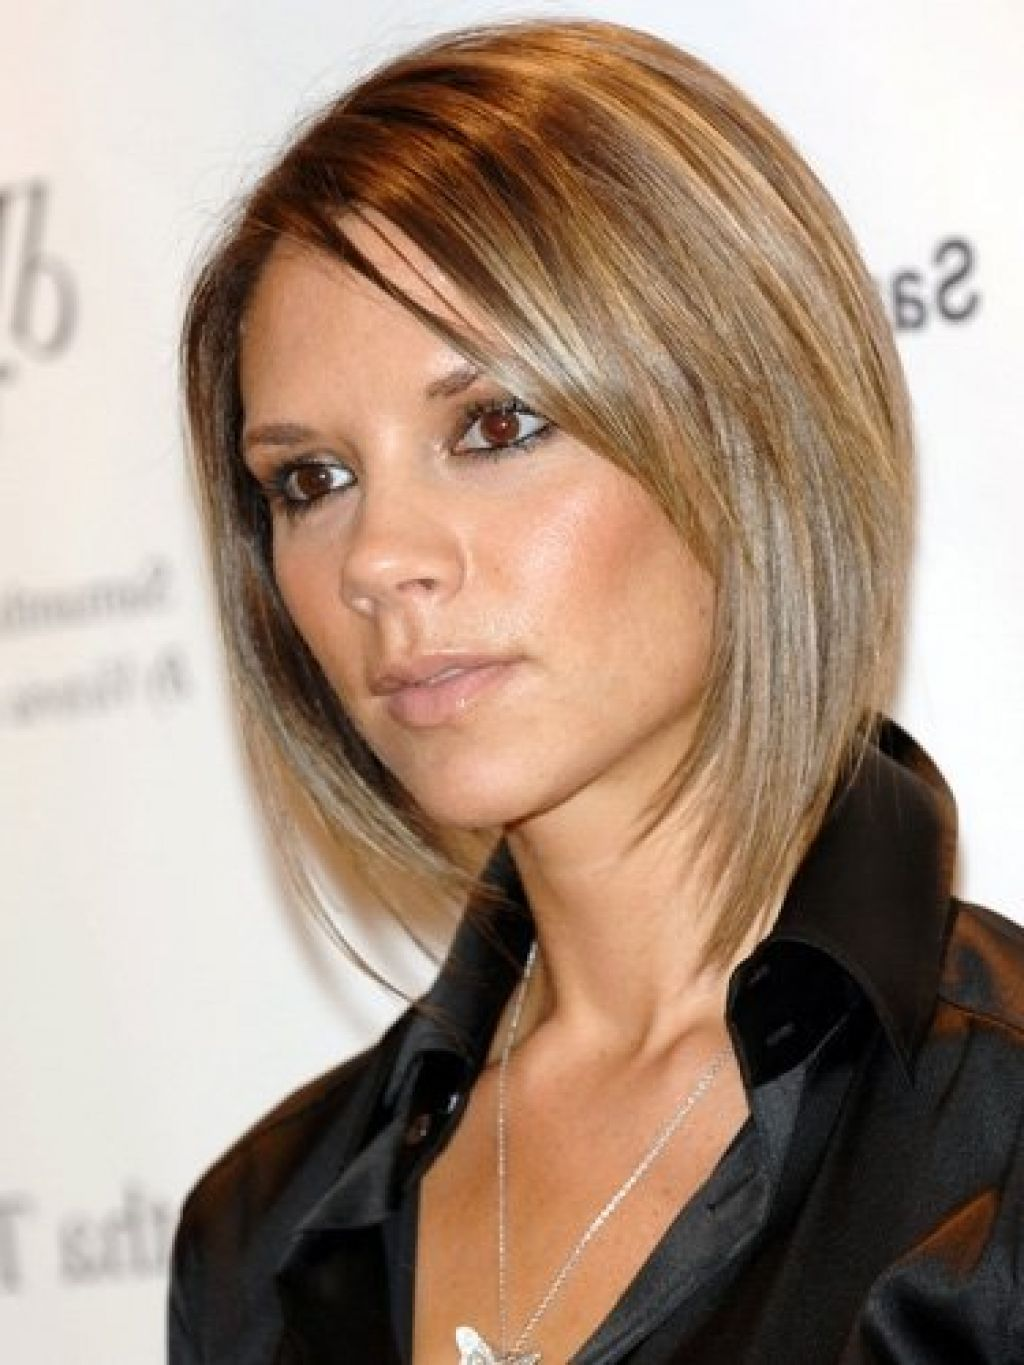 Victoria Beckham Haircuts Ideas Hair Cuts Frisuren Victoria